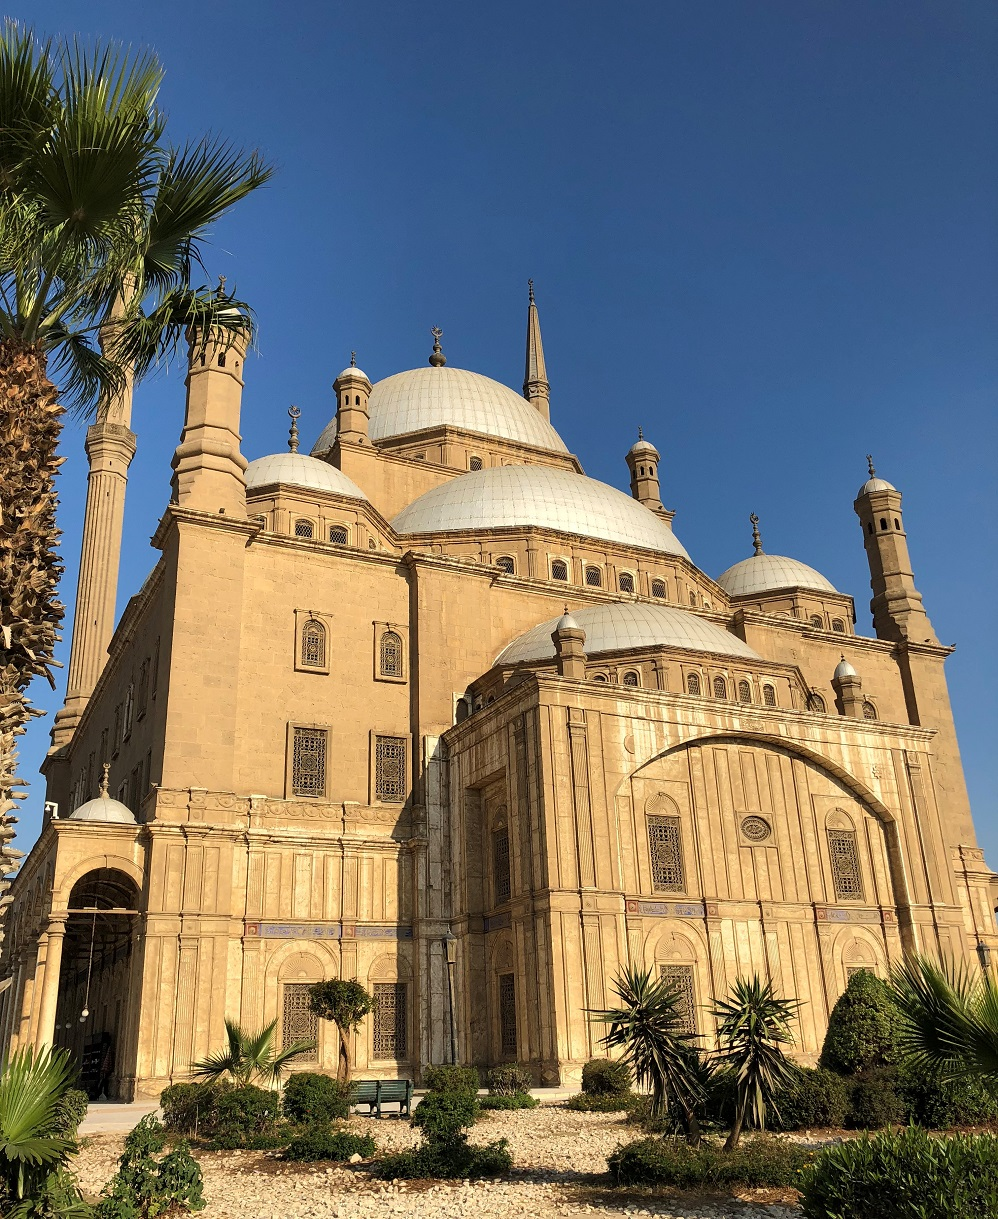 Blue Mosque in Citadel of Saladin, Cairo